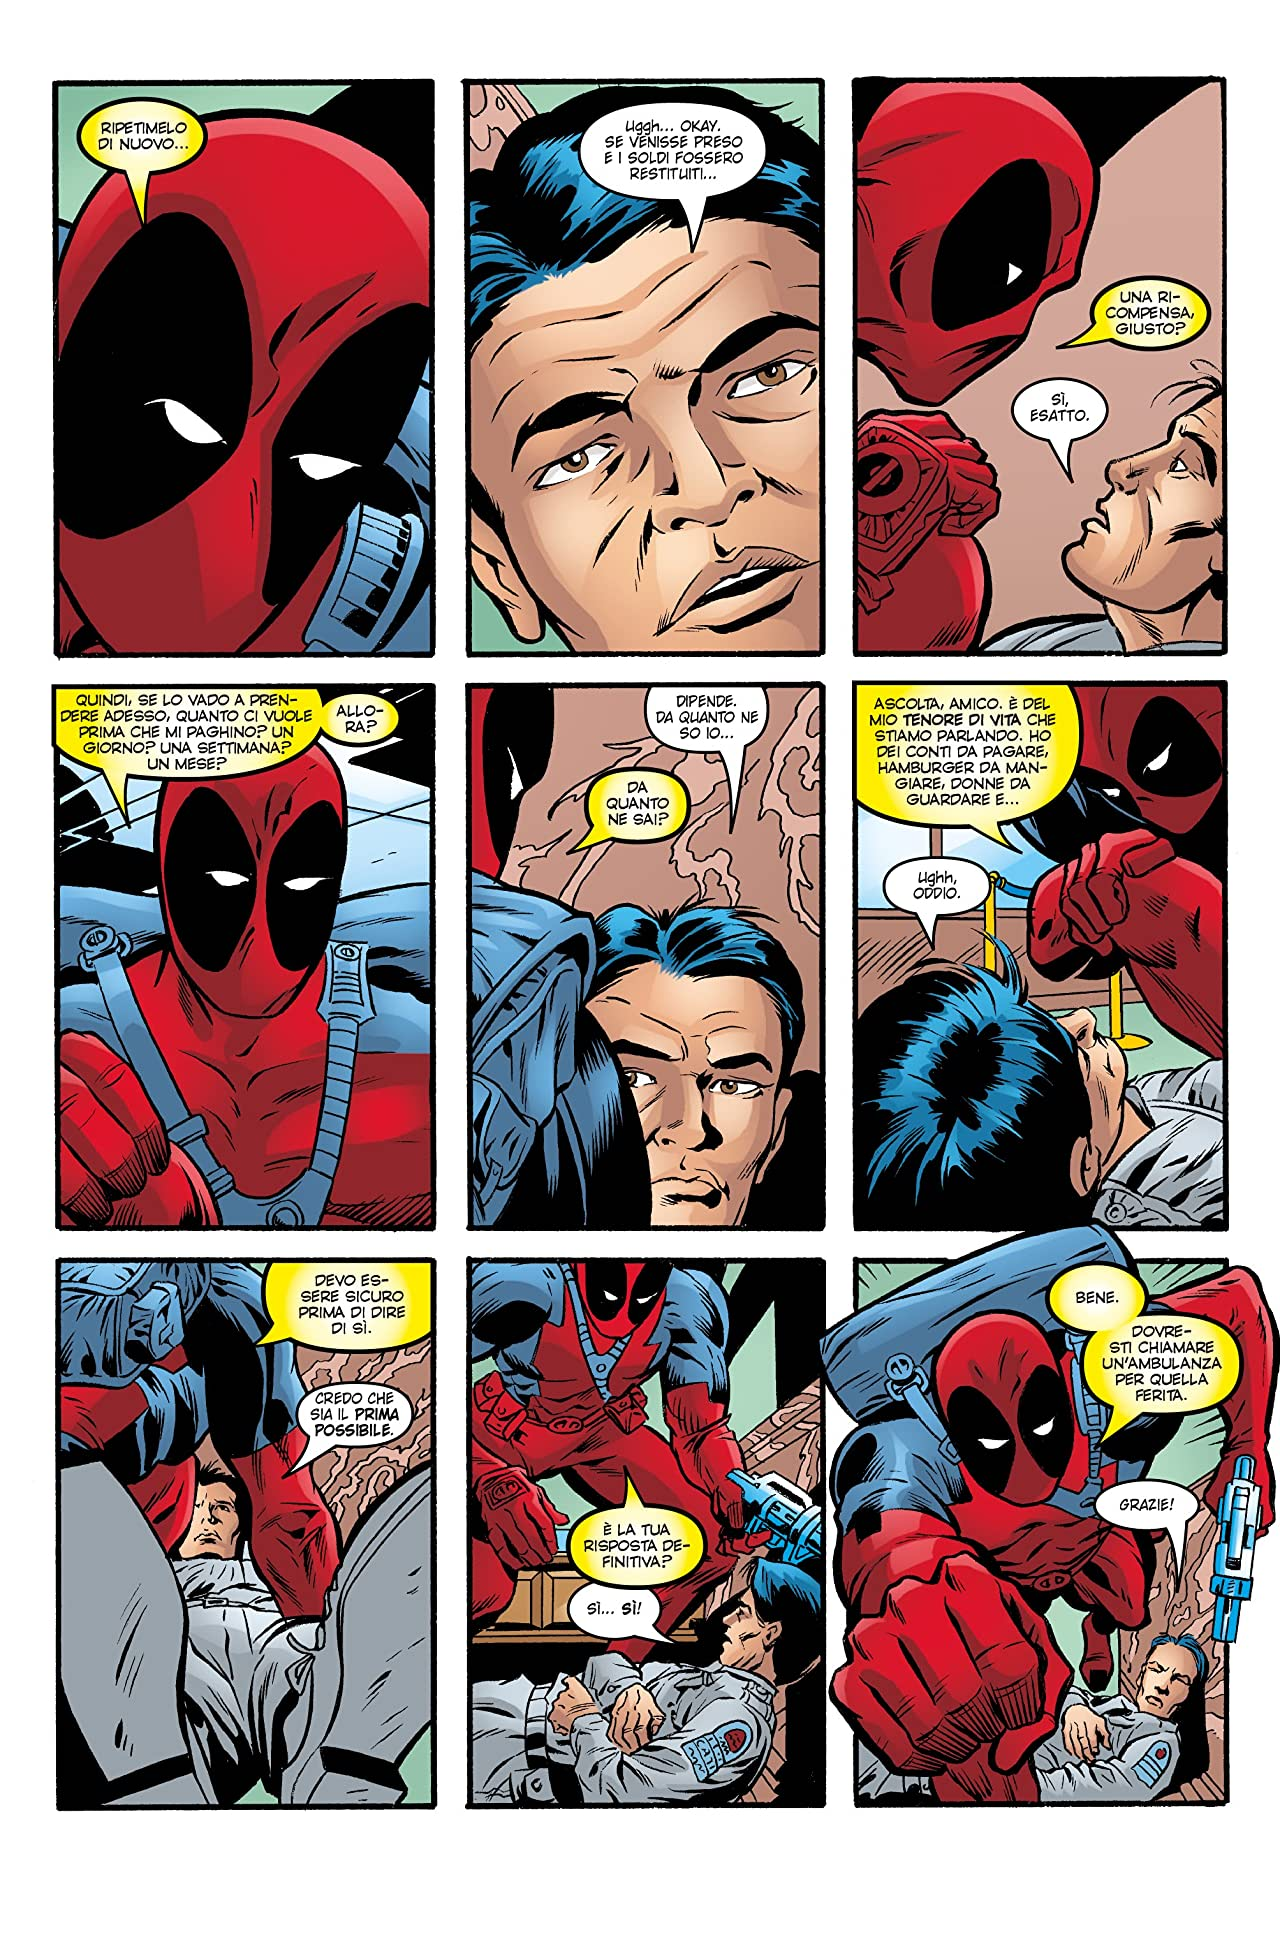 Deadpool Classic Vol. 11: Estate Crudele